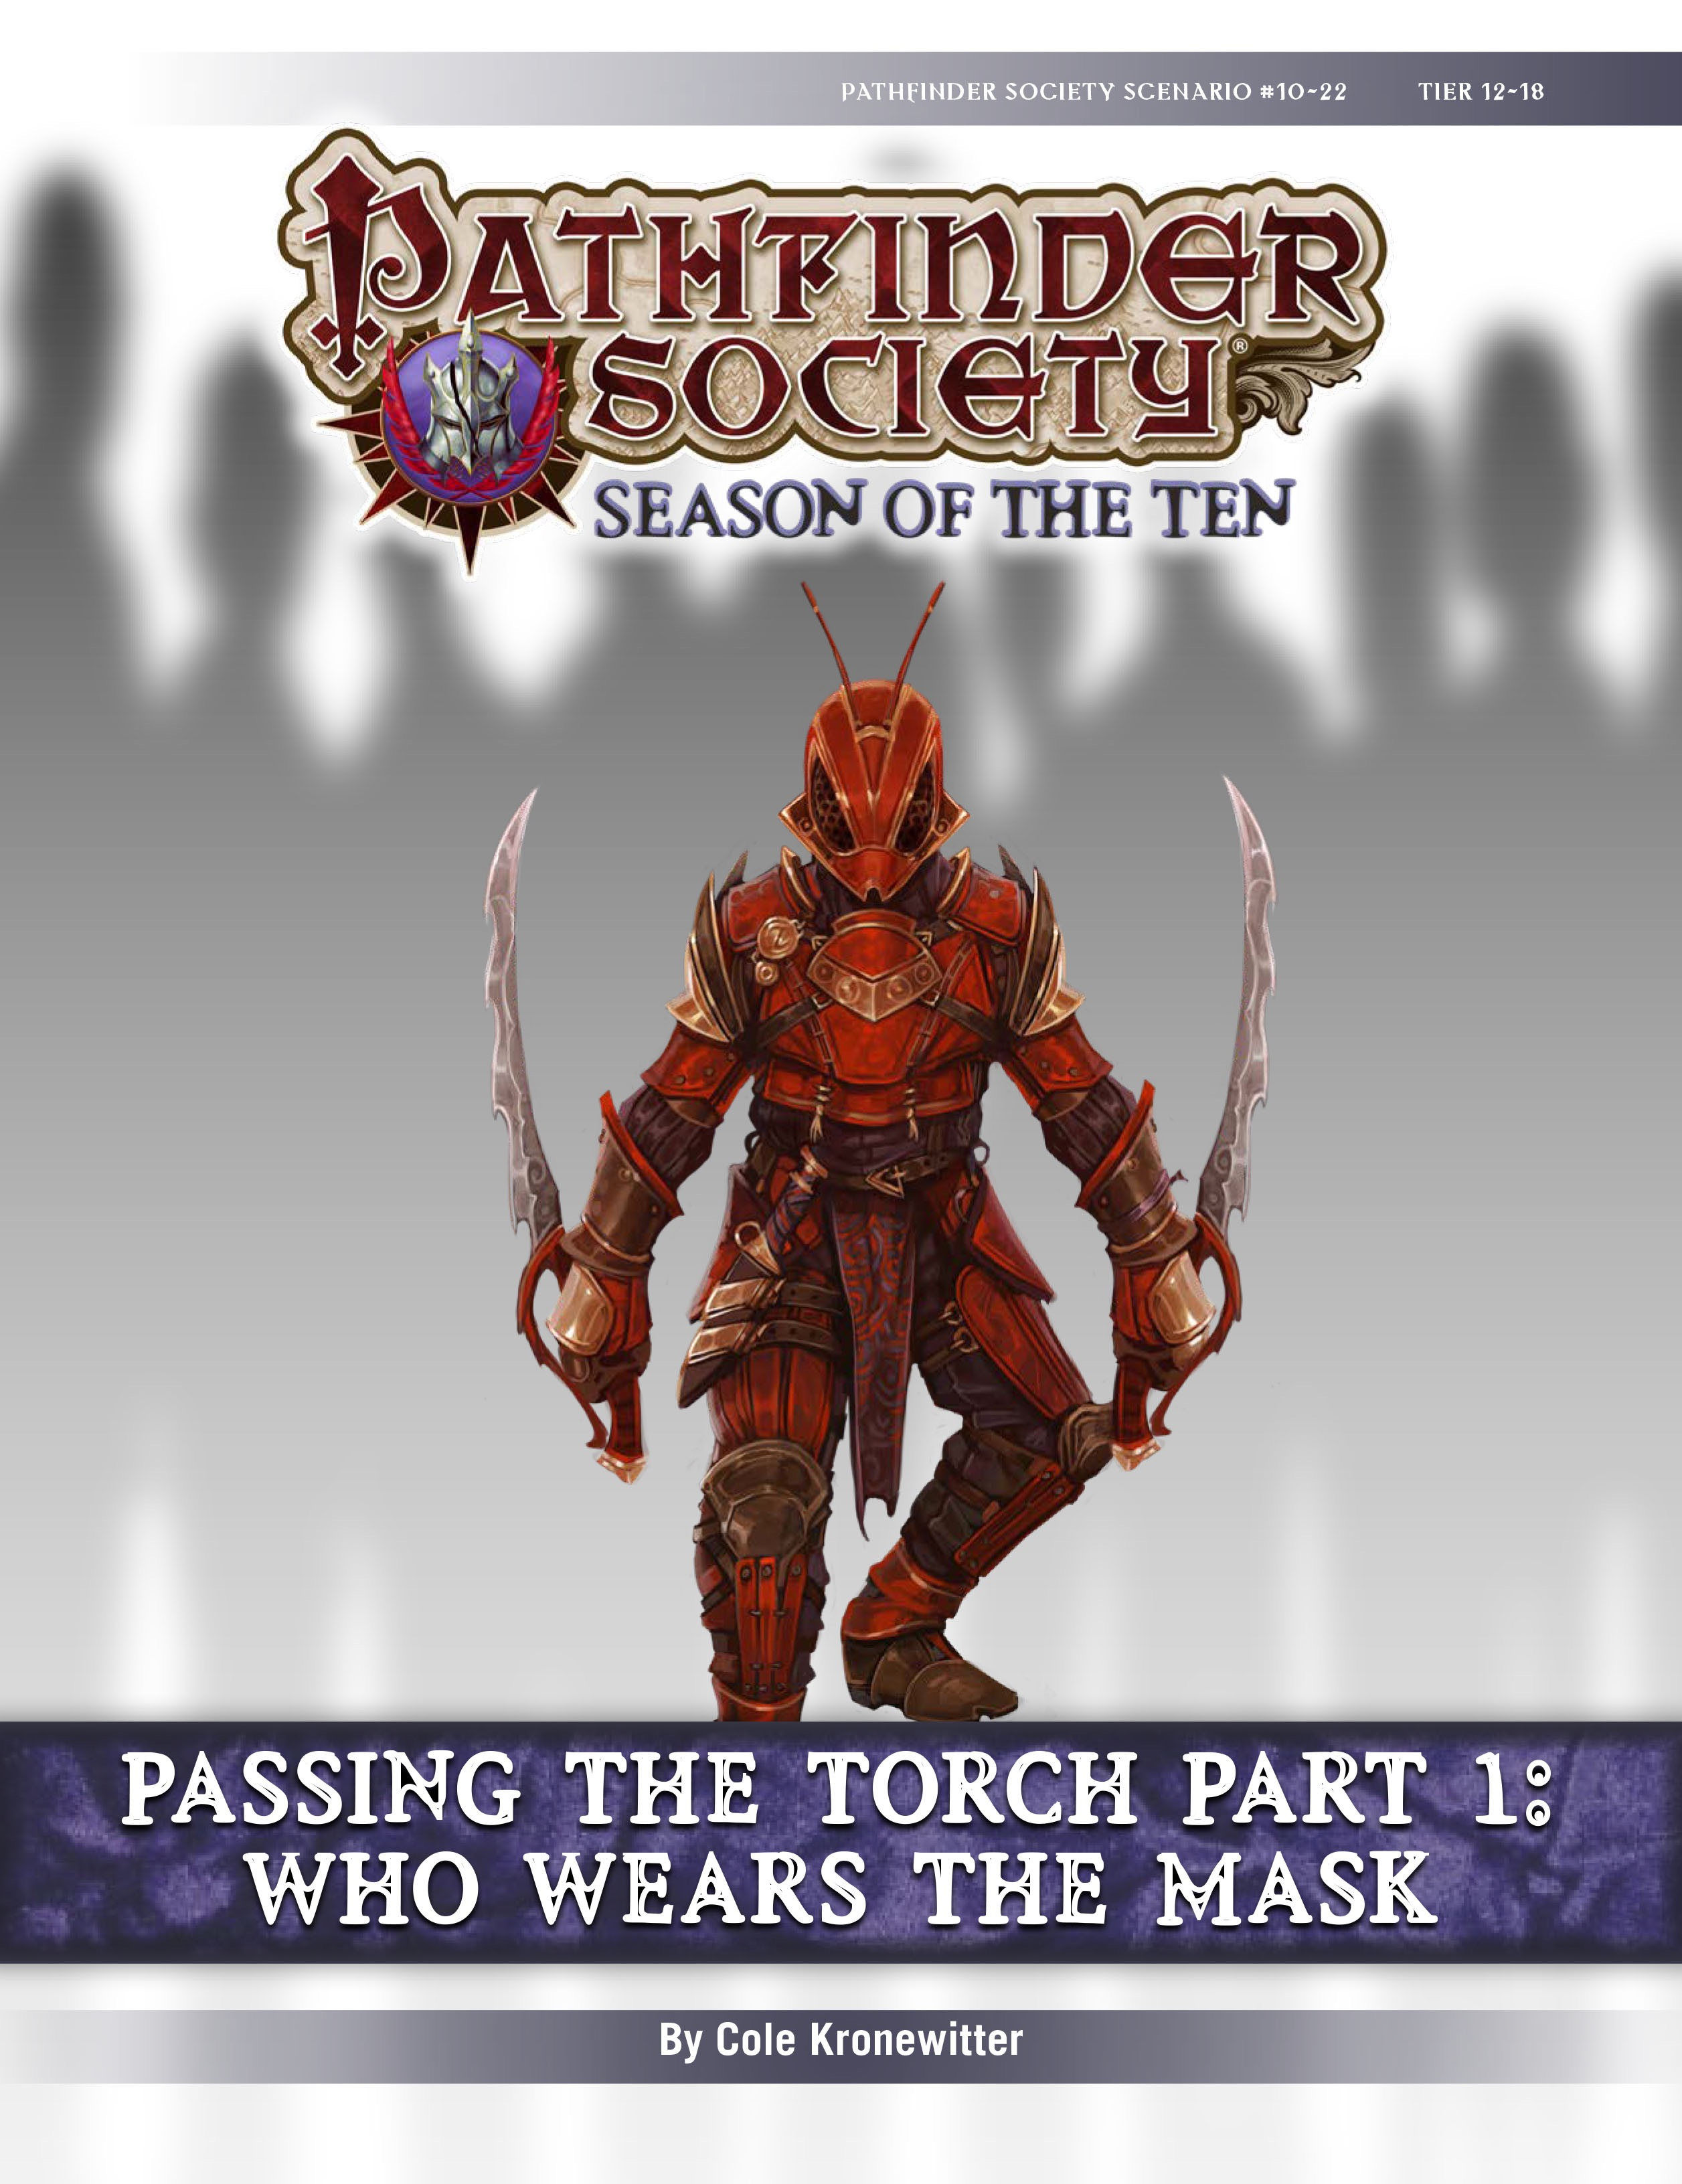 Pathfinder Society Scenario #10-22—Passing the Torch, Part 1: Who Wears the  Mask